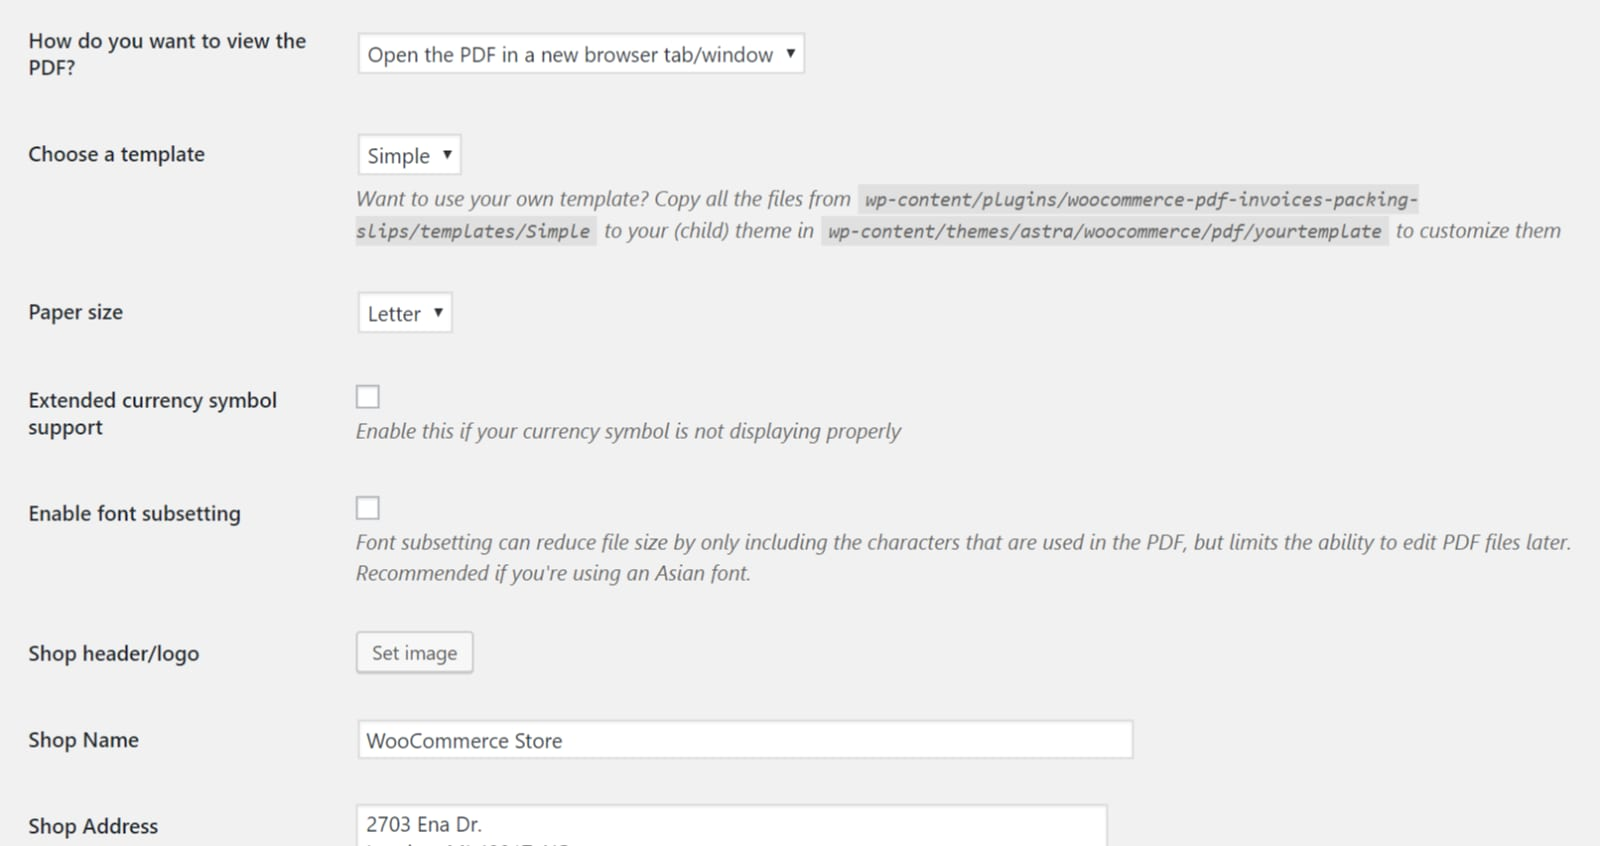 WooCommerce PDF Invoices & Packing Slips General tab